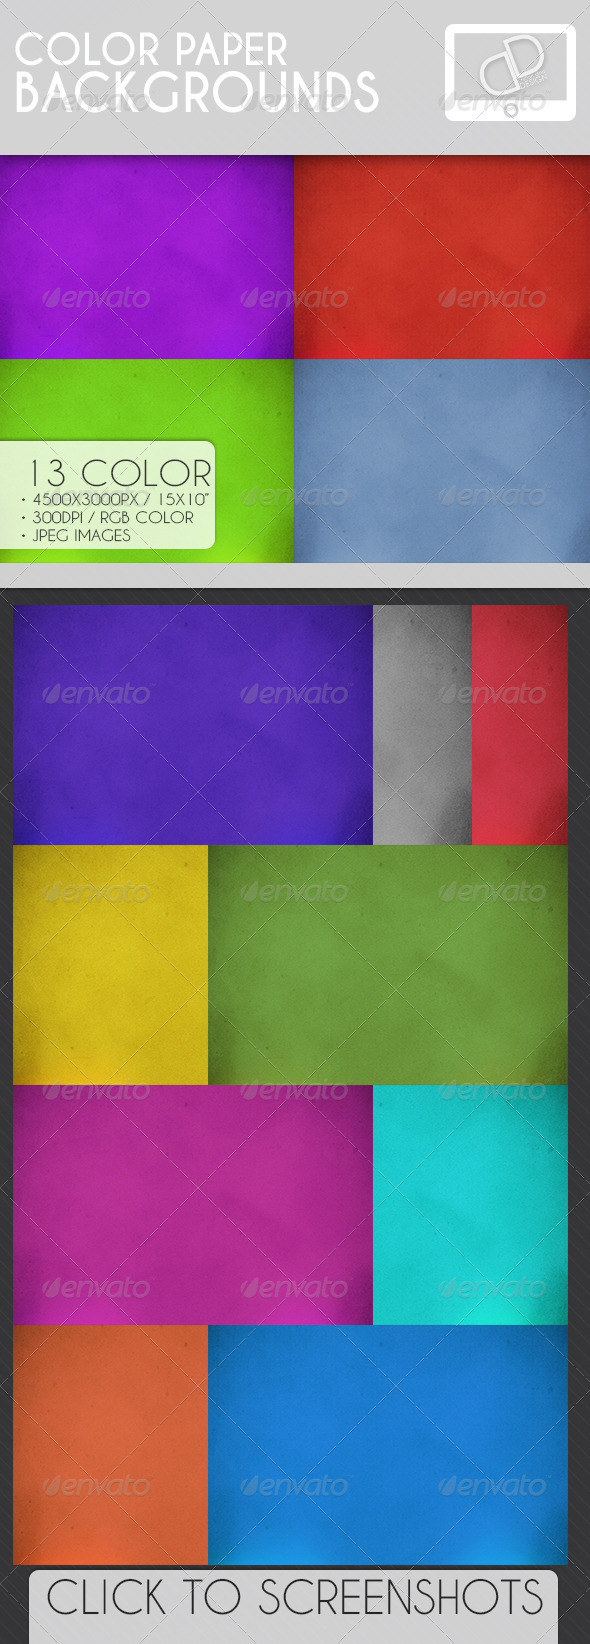 GraphicRiver Color Paper Backgrounds 7070249